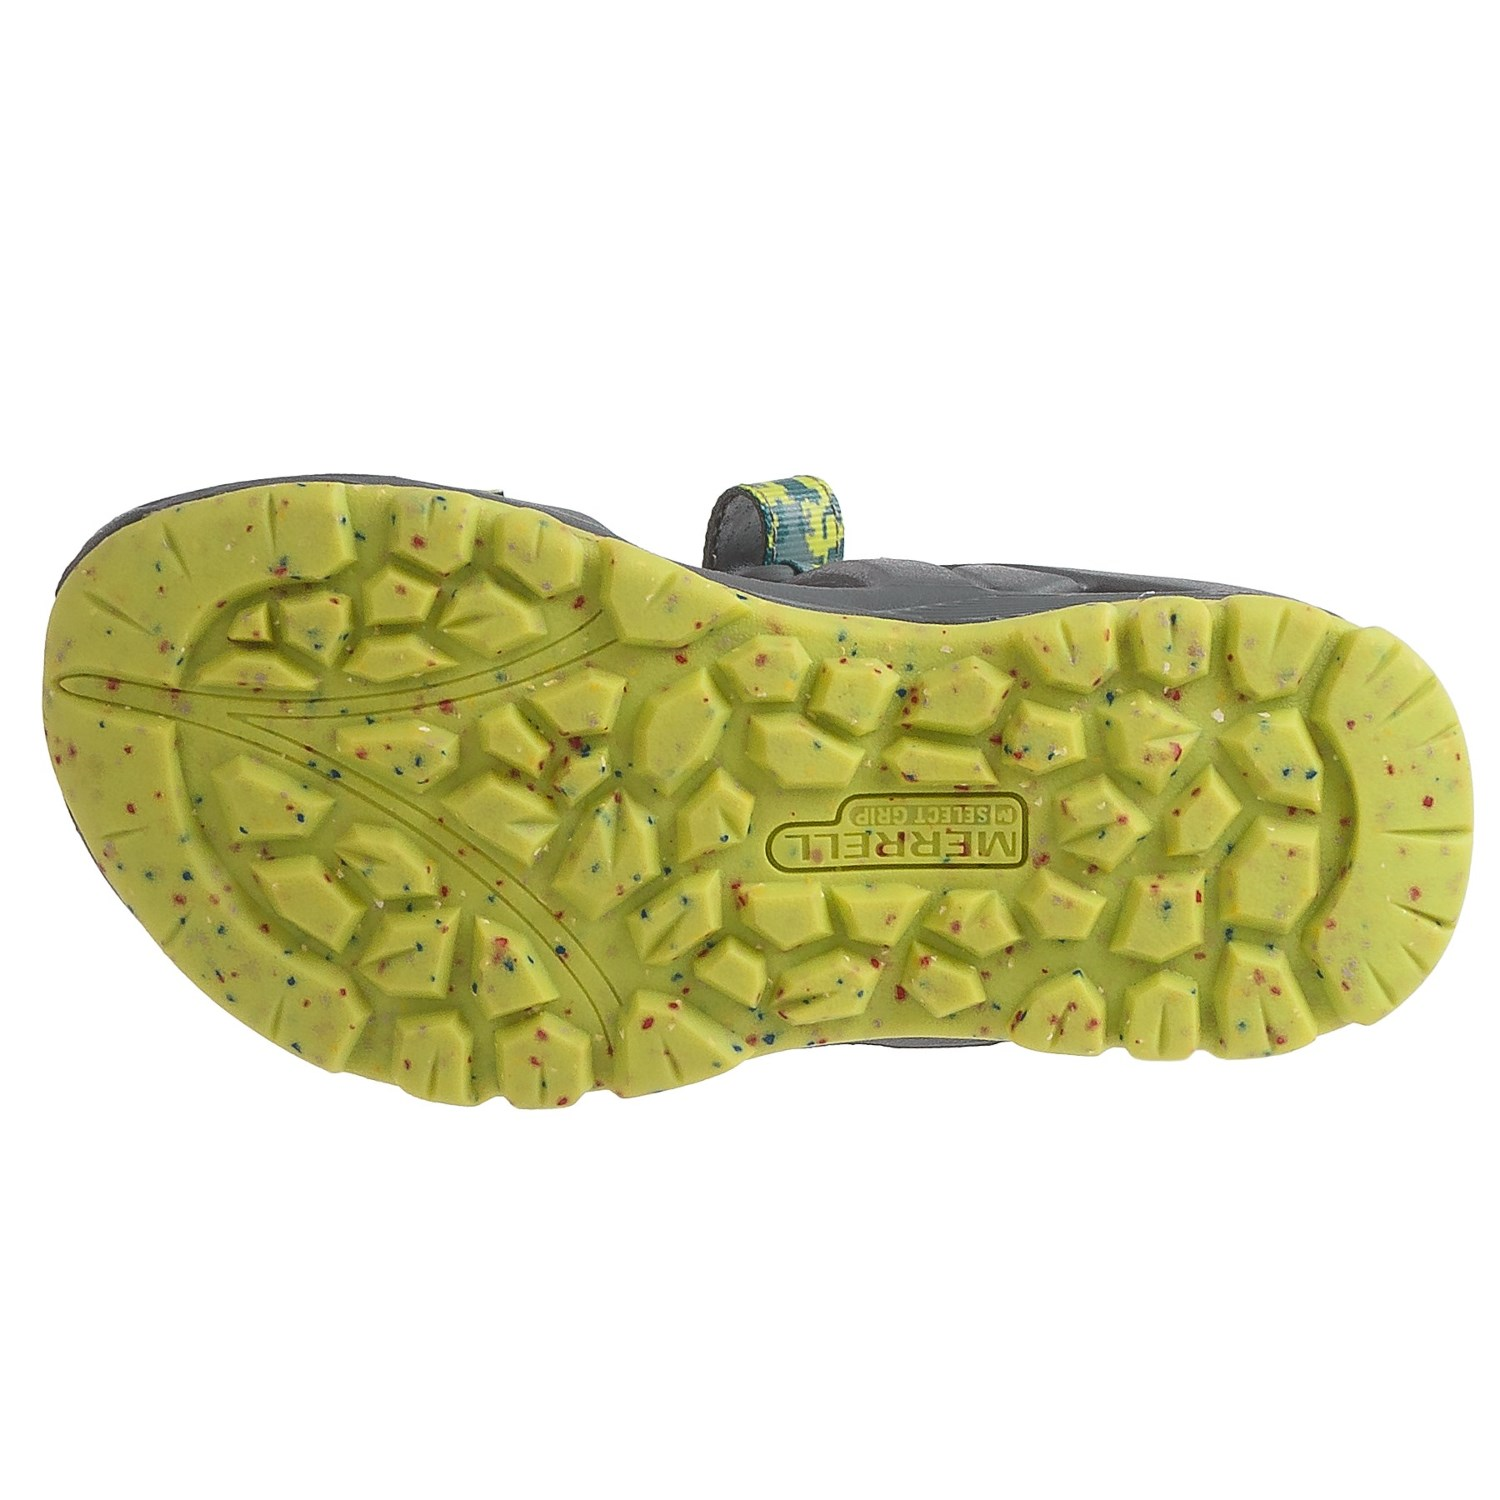 Merrell Hydro Drift Sandals For Infant and Toddler Boys Save